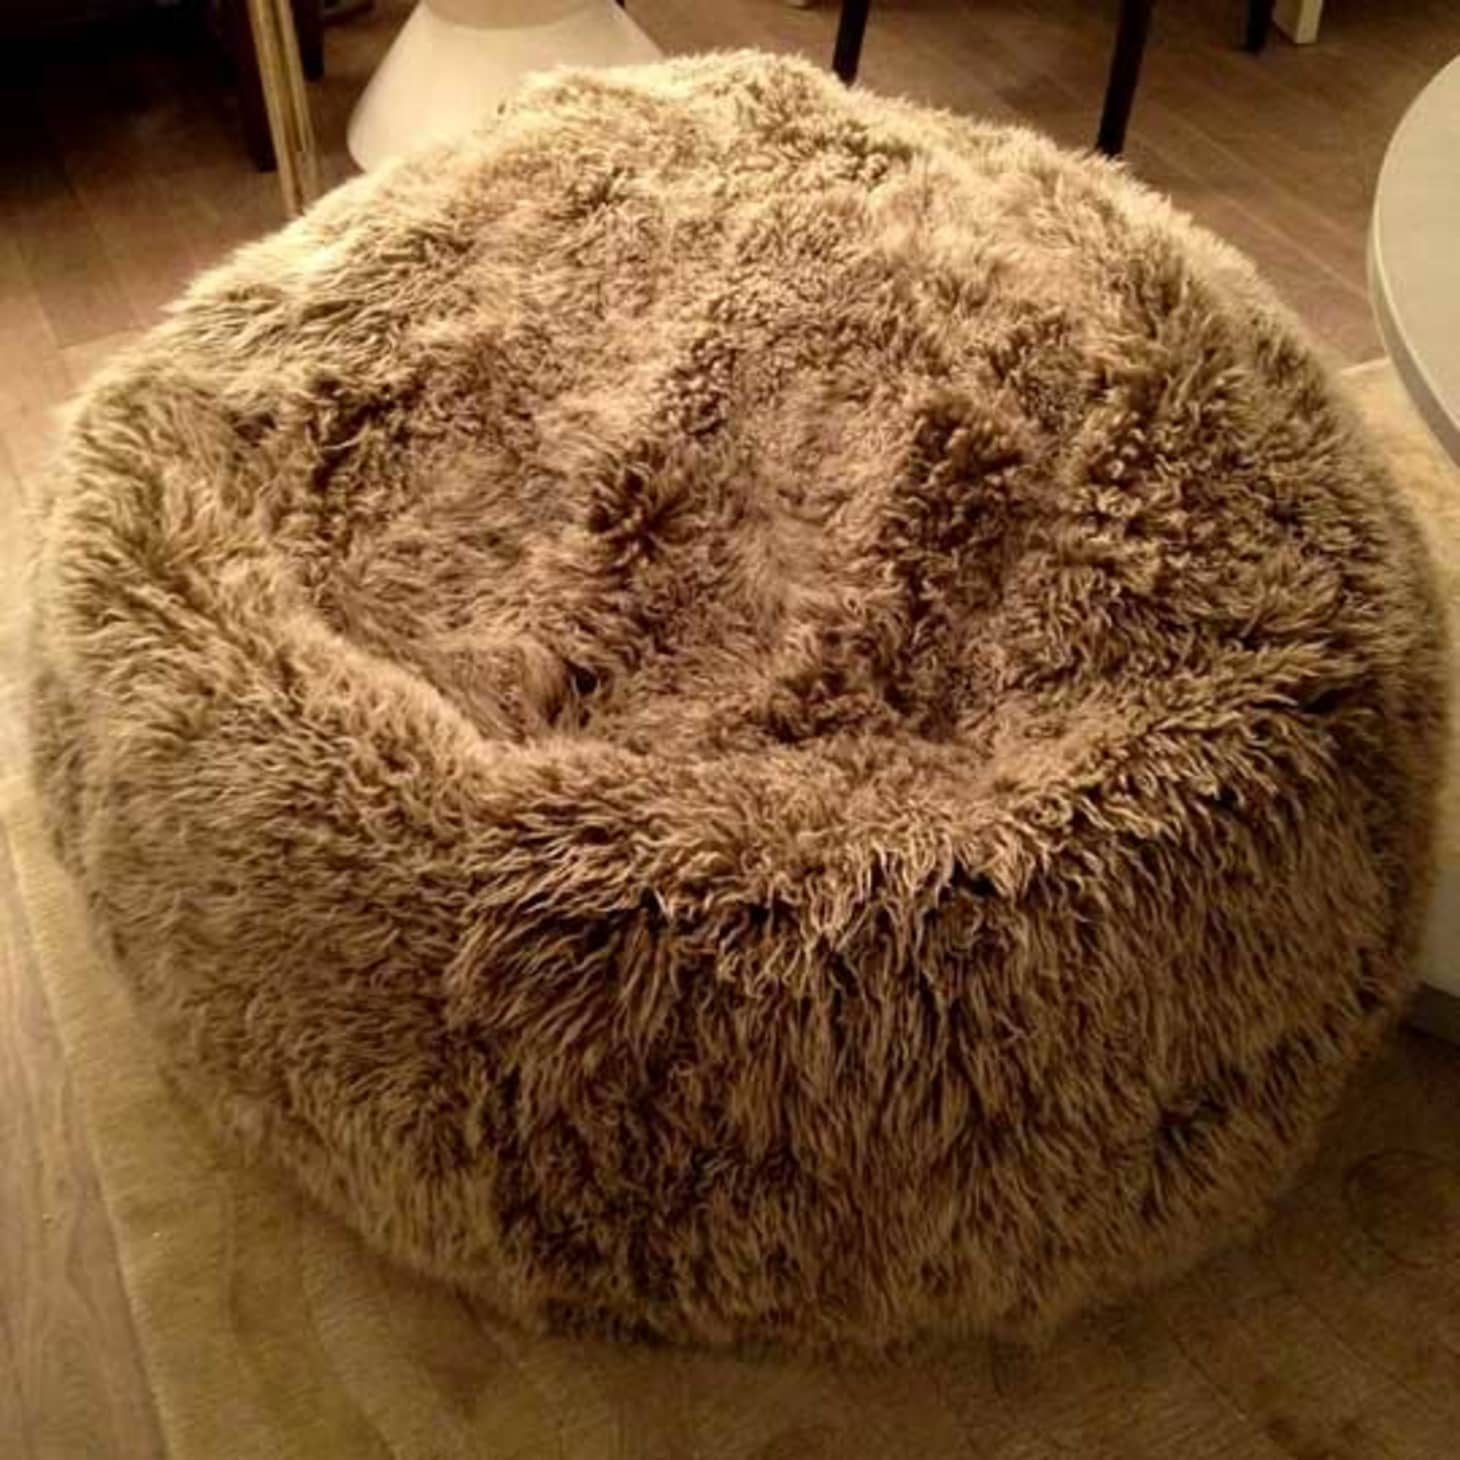 Miraculous Best Beanbag Chairs Yogibo Fatboy Pbteen Apartment Therapy Ncnpc Chair Design For Home Ncnpcorg